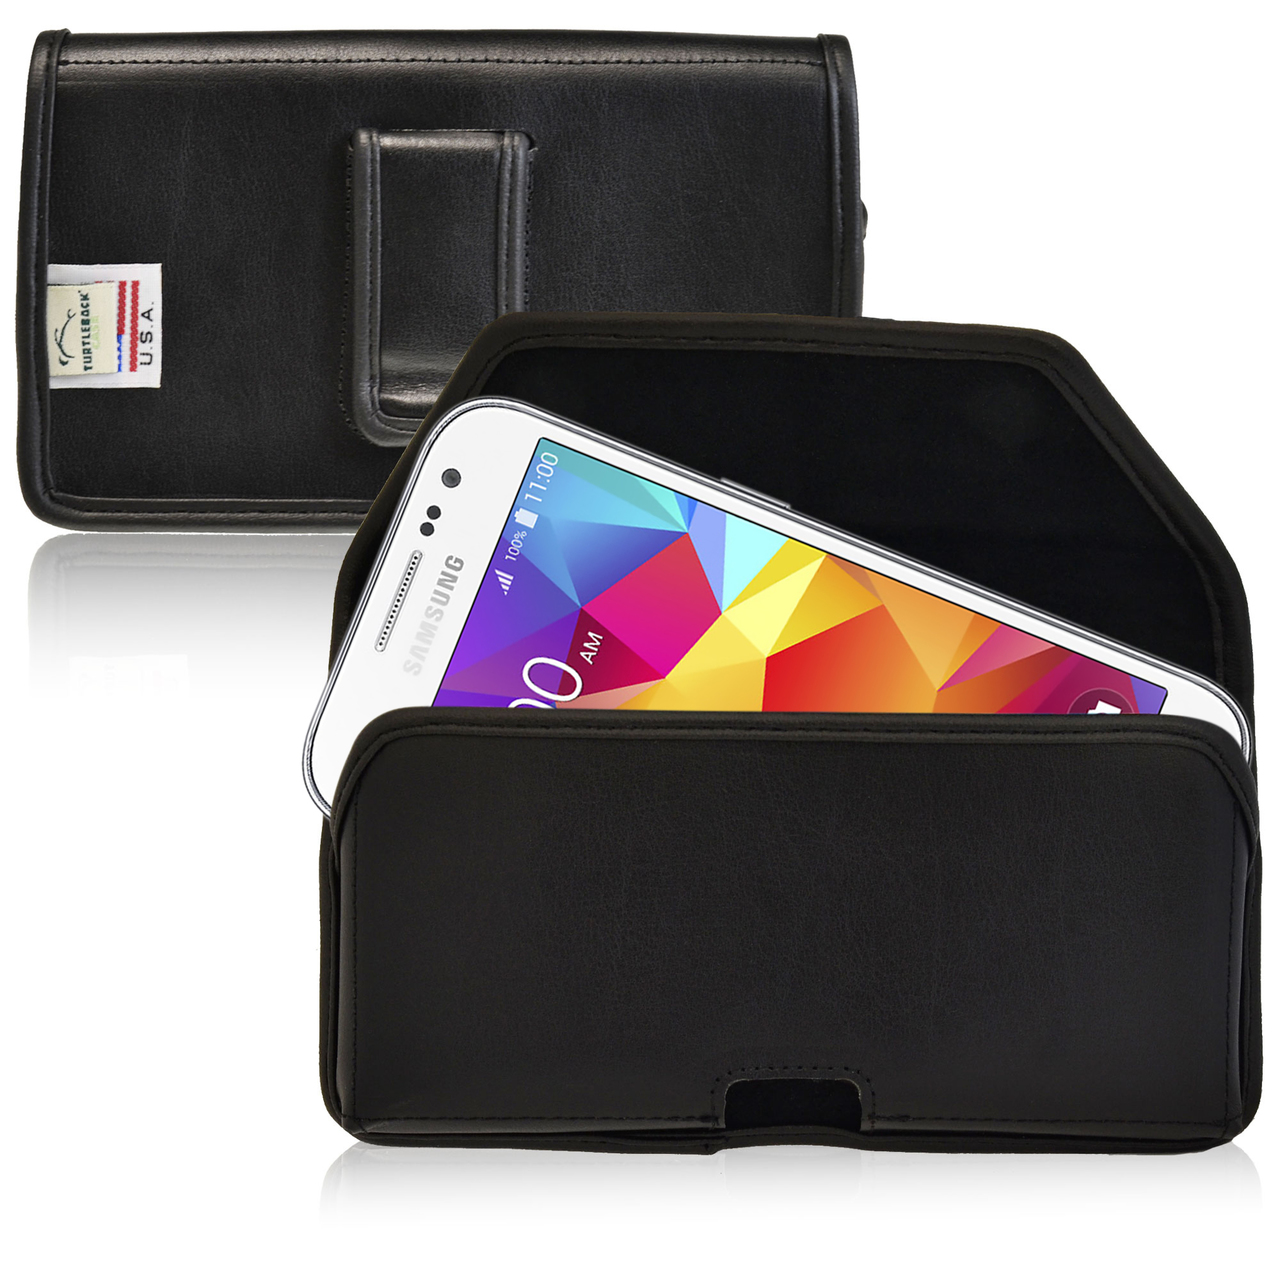 Samsung Galaxy Core Prime Pouch, Turtleback [Black] Horizontal Real Leather Holster Pouch Case w/ Black Leather Belt Clip - Made in the USA!